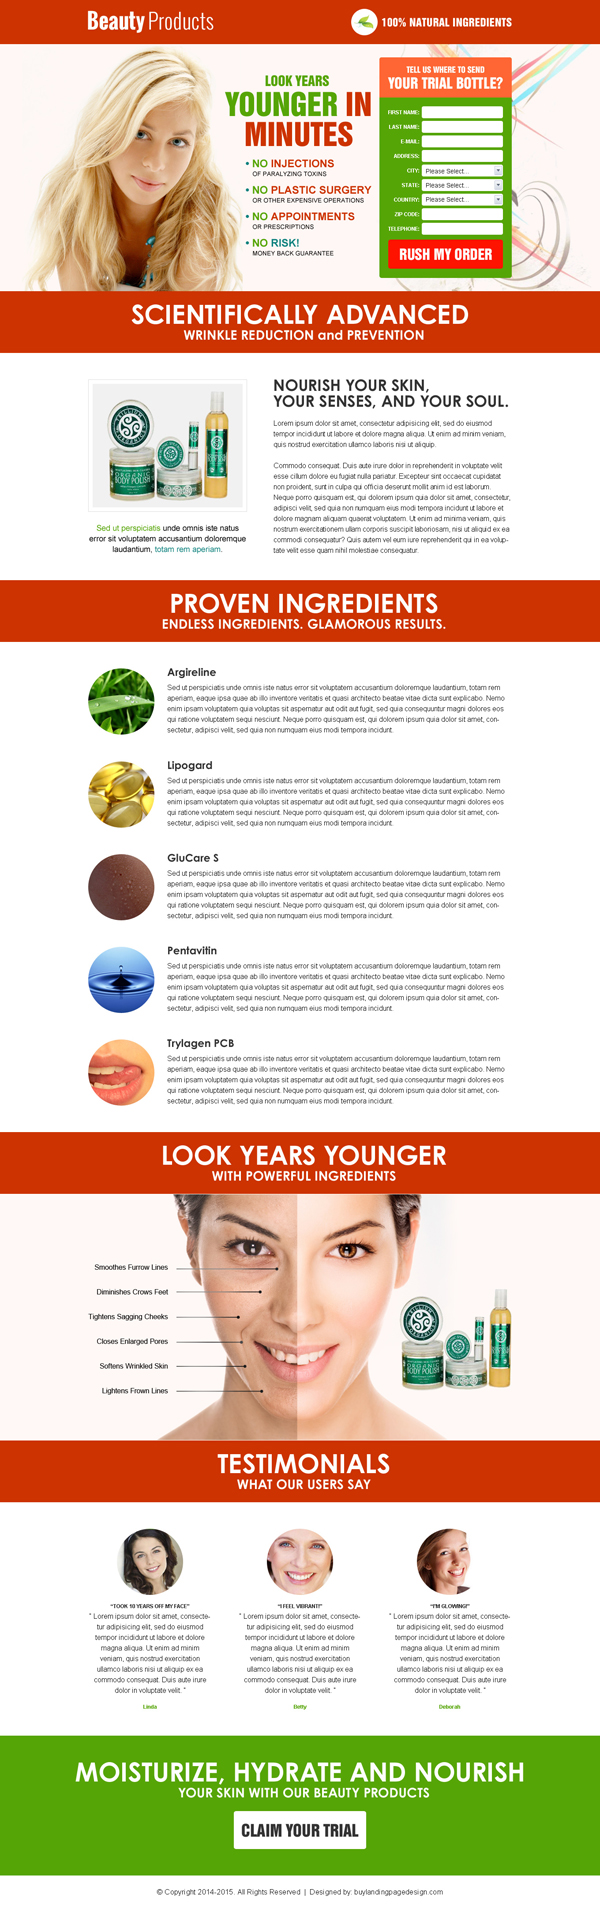 clean-beauty-product-lead-capture-converting-squeeze-page-design